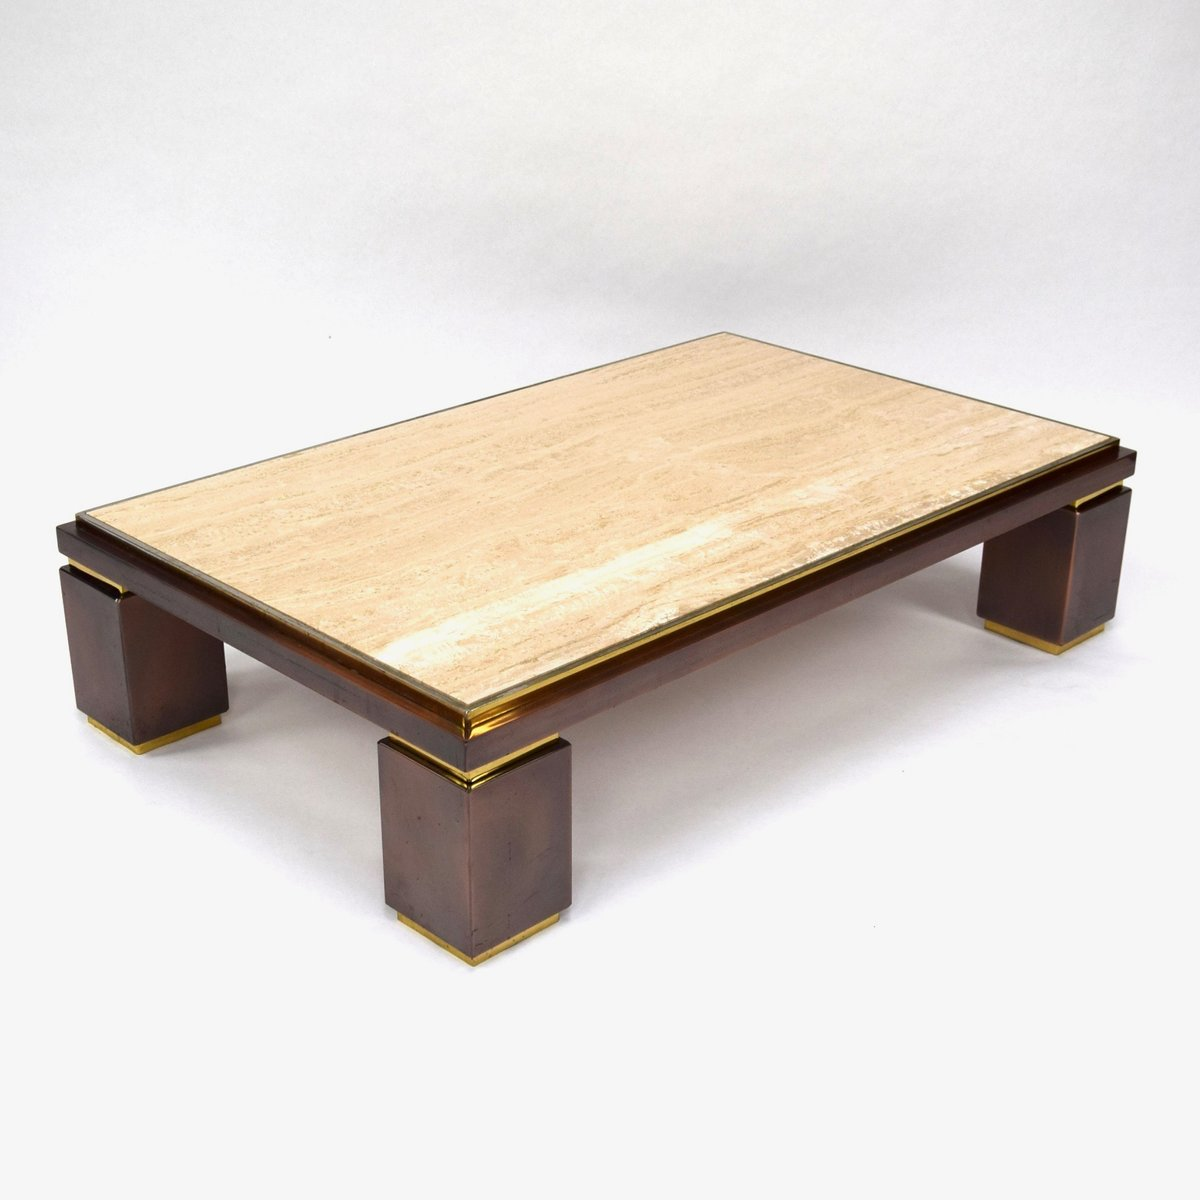 Travertine Coffee Table From Belgo Chrom, 1970s For Sale